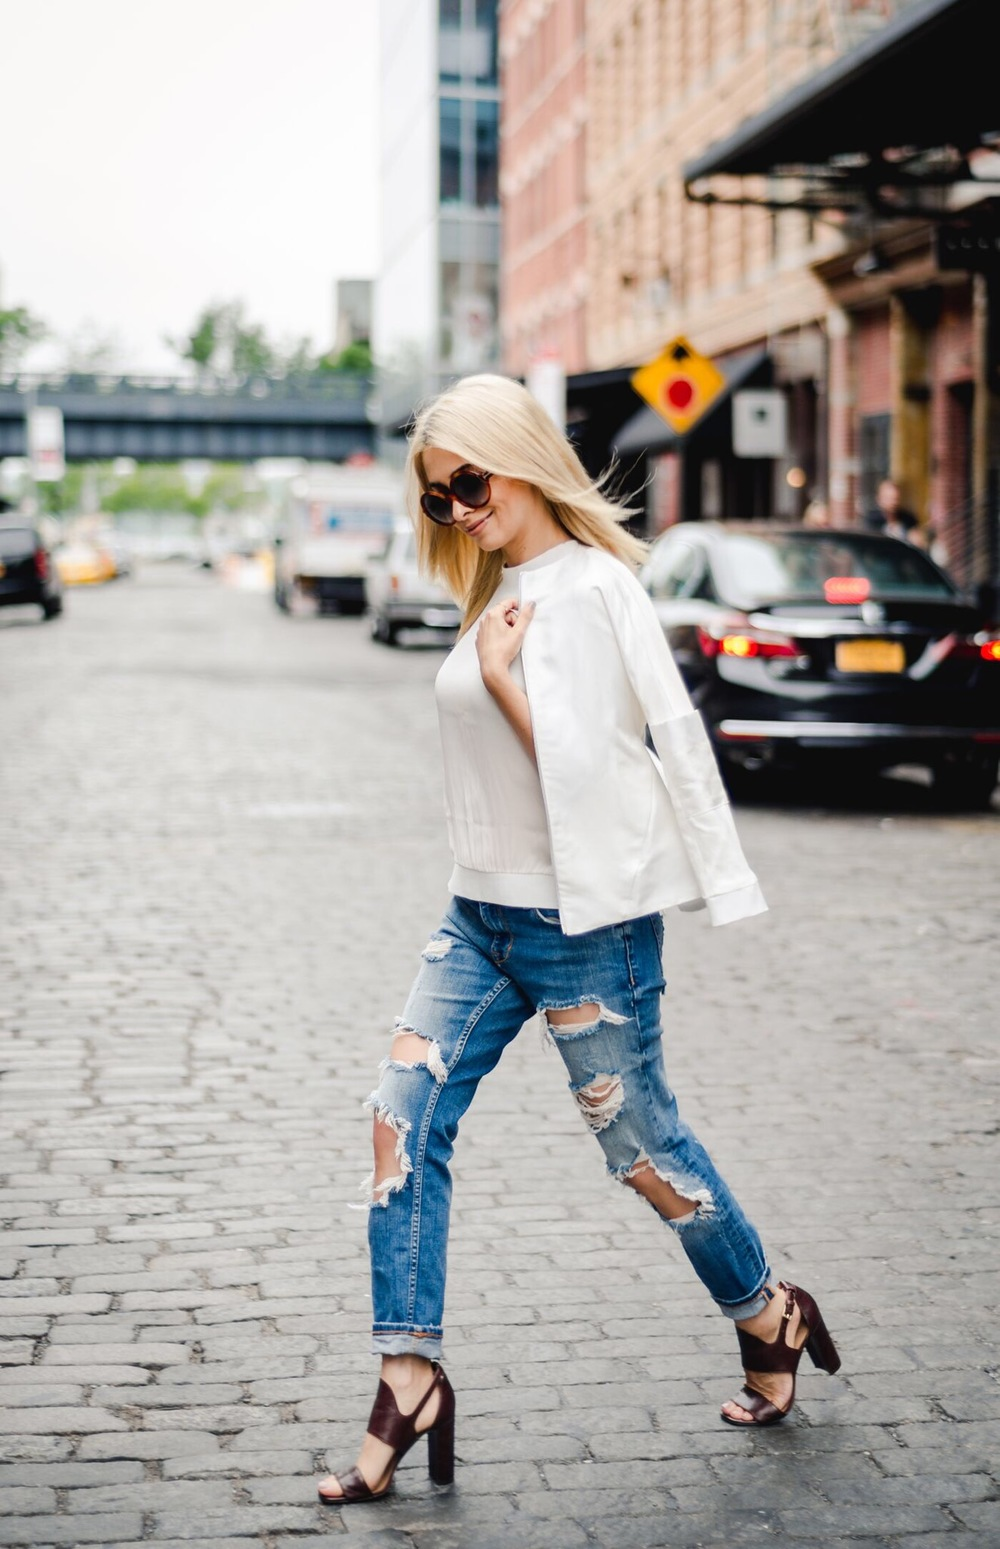 distressed jeans_banana republic shoes_phillip lim top_jonathan simkhai jacket_zara ripped jeans_icy blonde hair_kim kardashian blonde hair_olsen twin hair_meatpacking district_nyc streetstyle_nyc blogger_nyc fashion blogger_best nyc bloggers_savvy javvy_journey with javvy